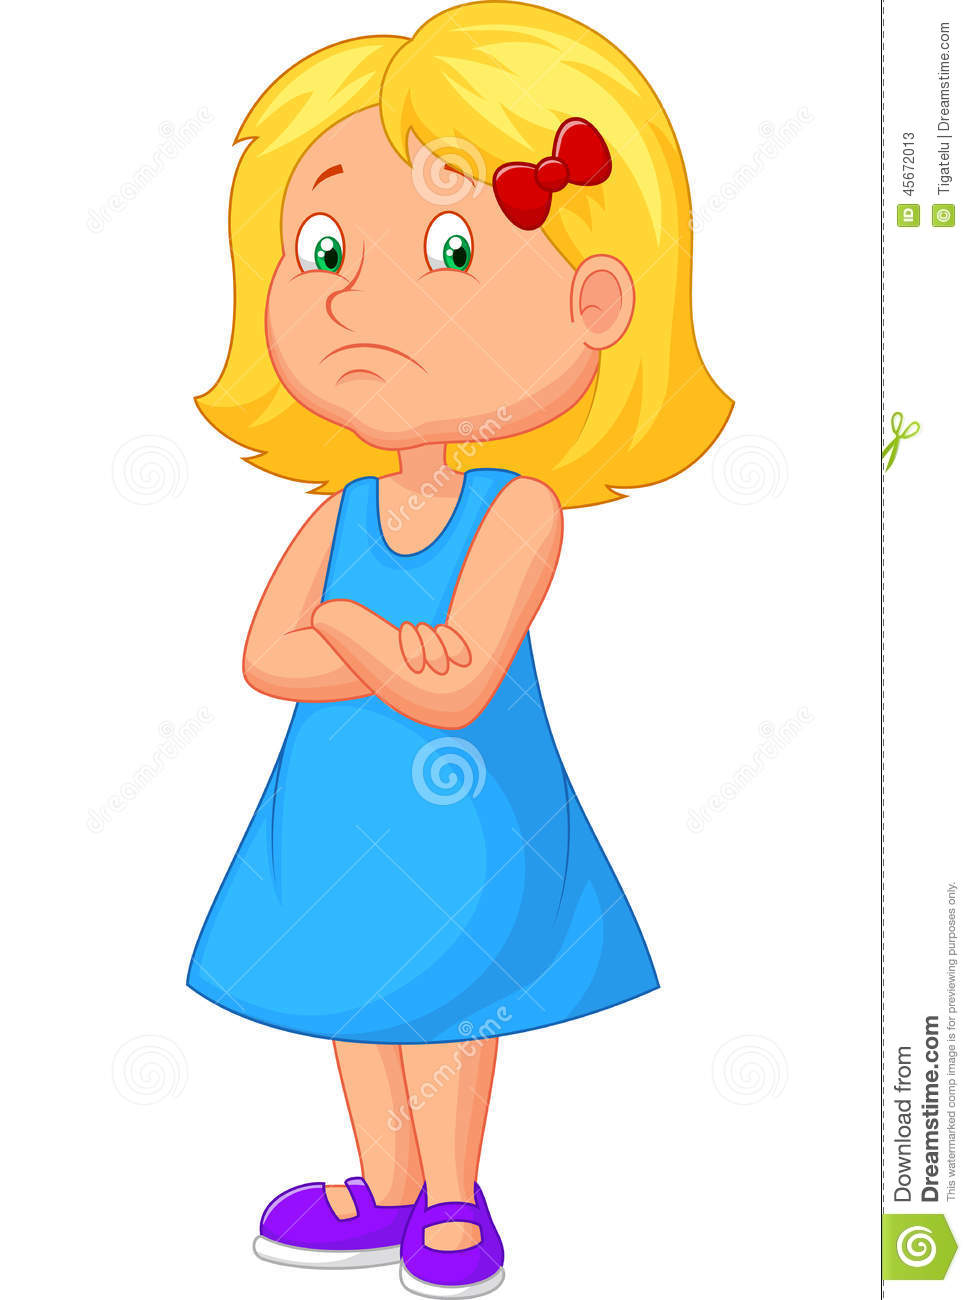 Angry girl cartoon stock vector. Illustration of child ...